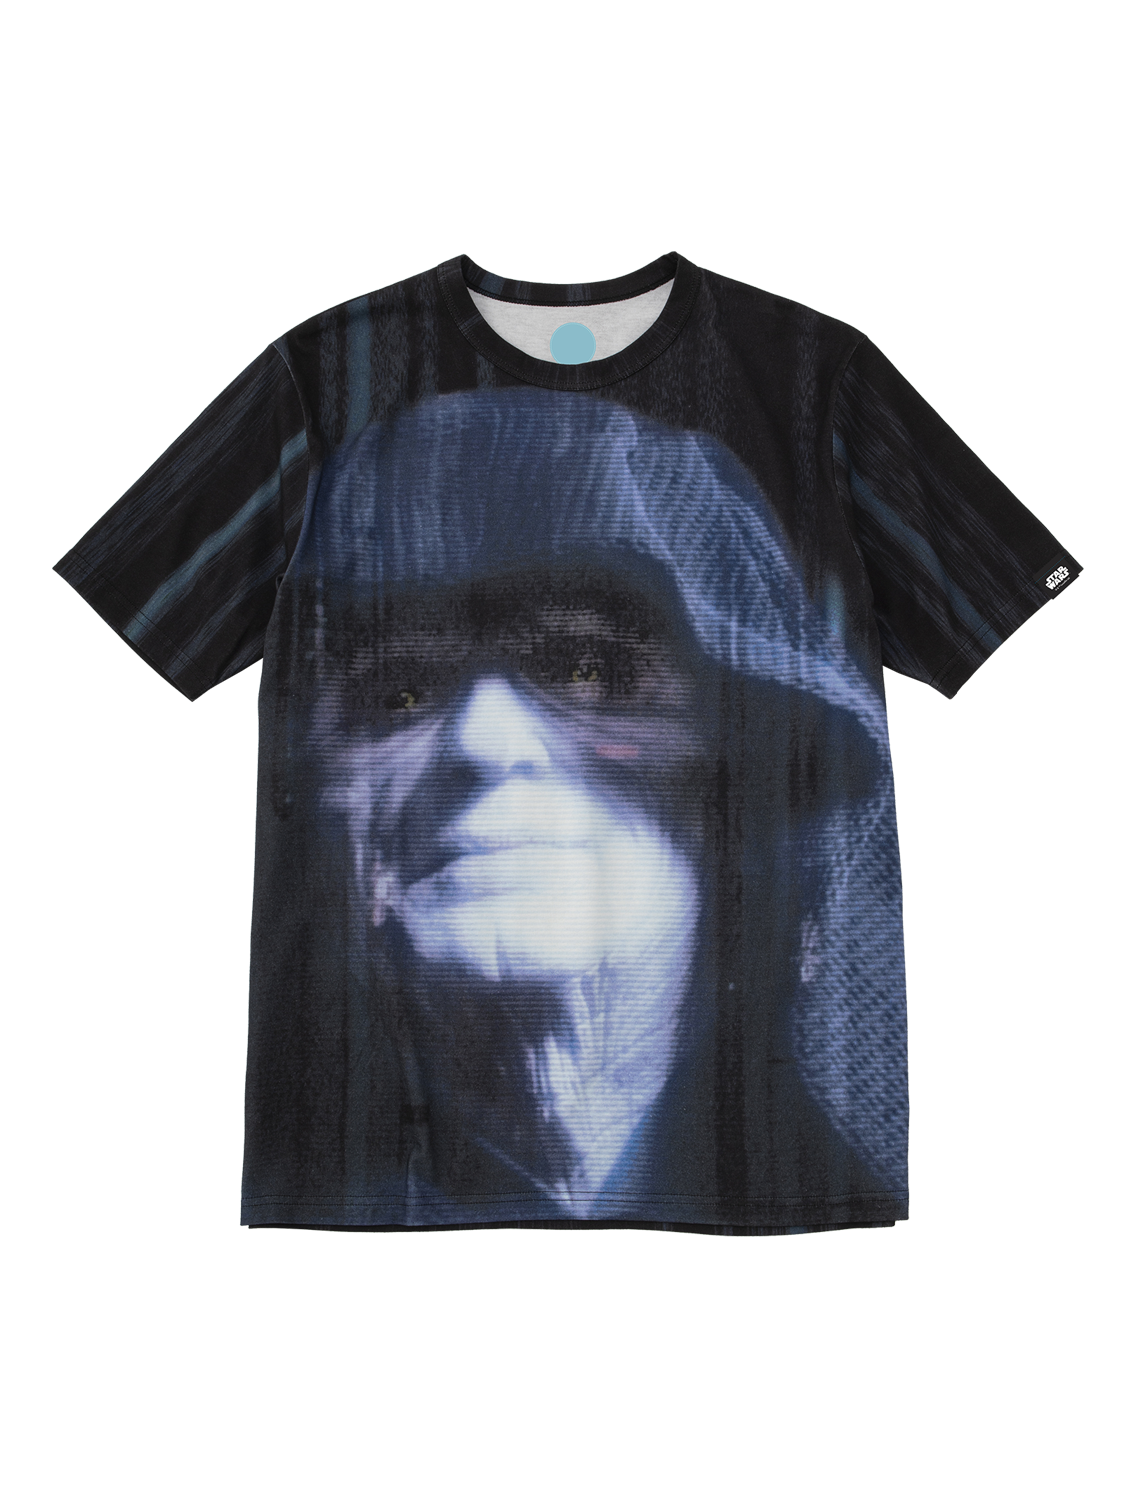 DARTH SIDIOUS TEE